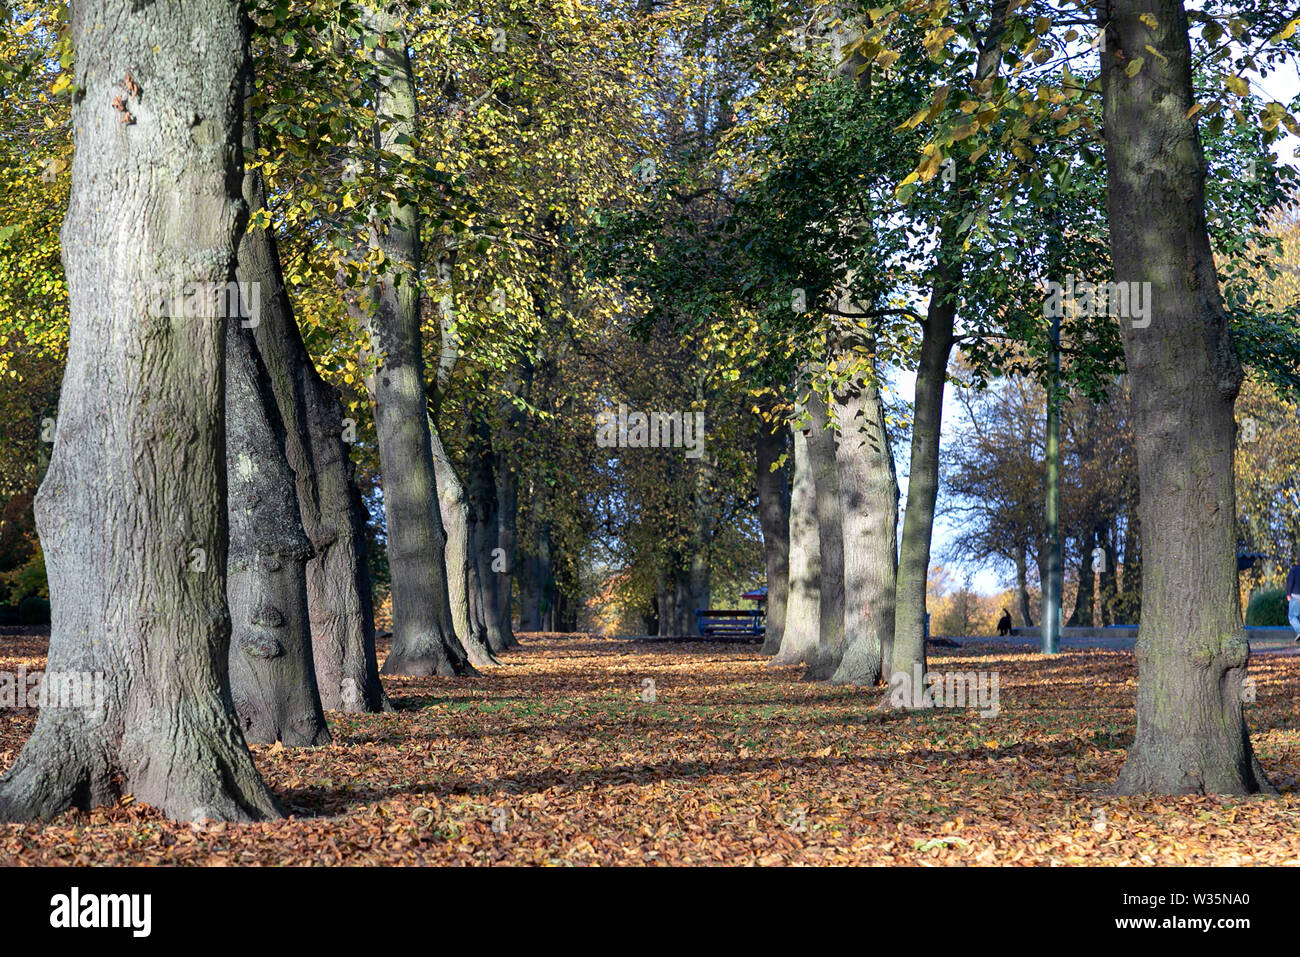 Ropner Park, Stockton on Tees. UK Stock Photo